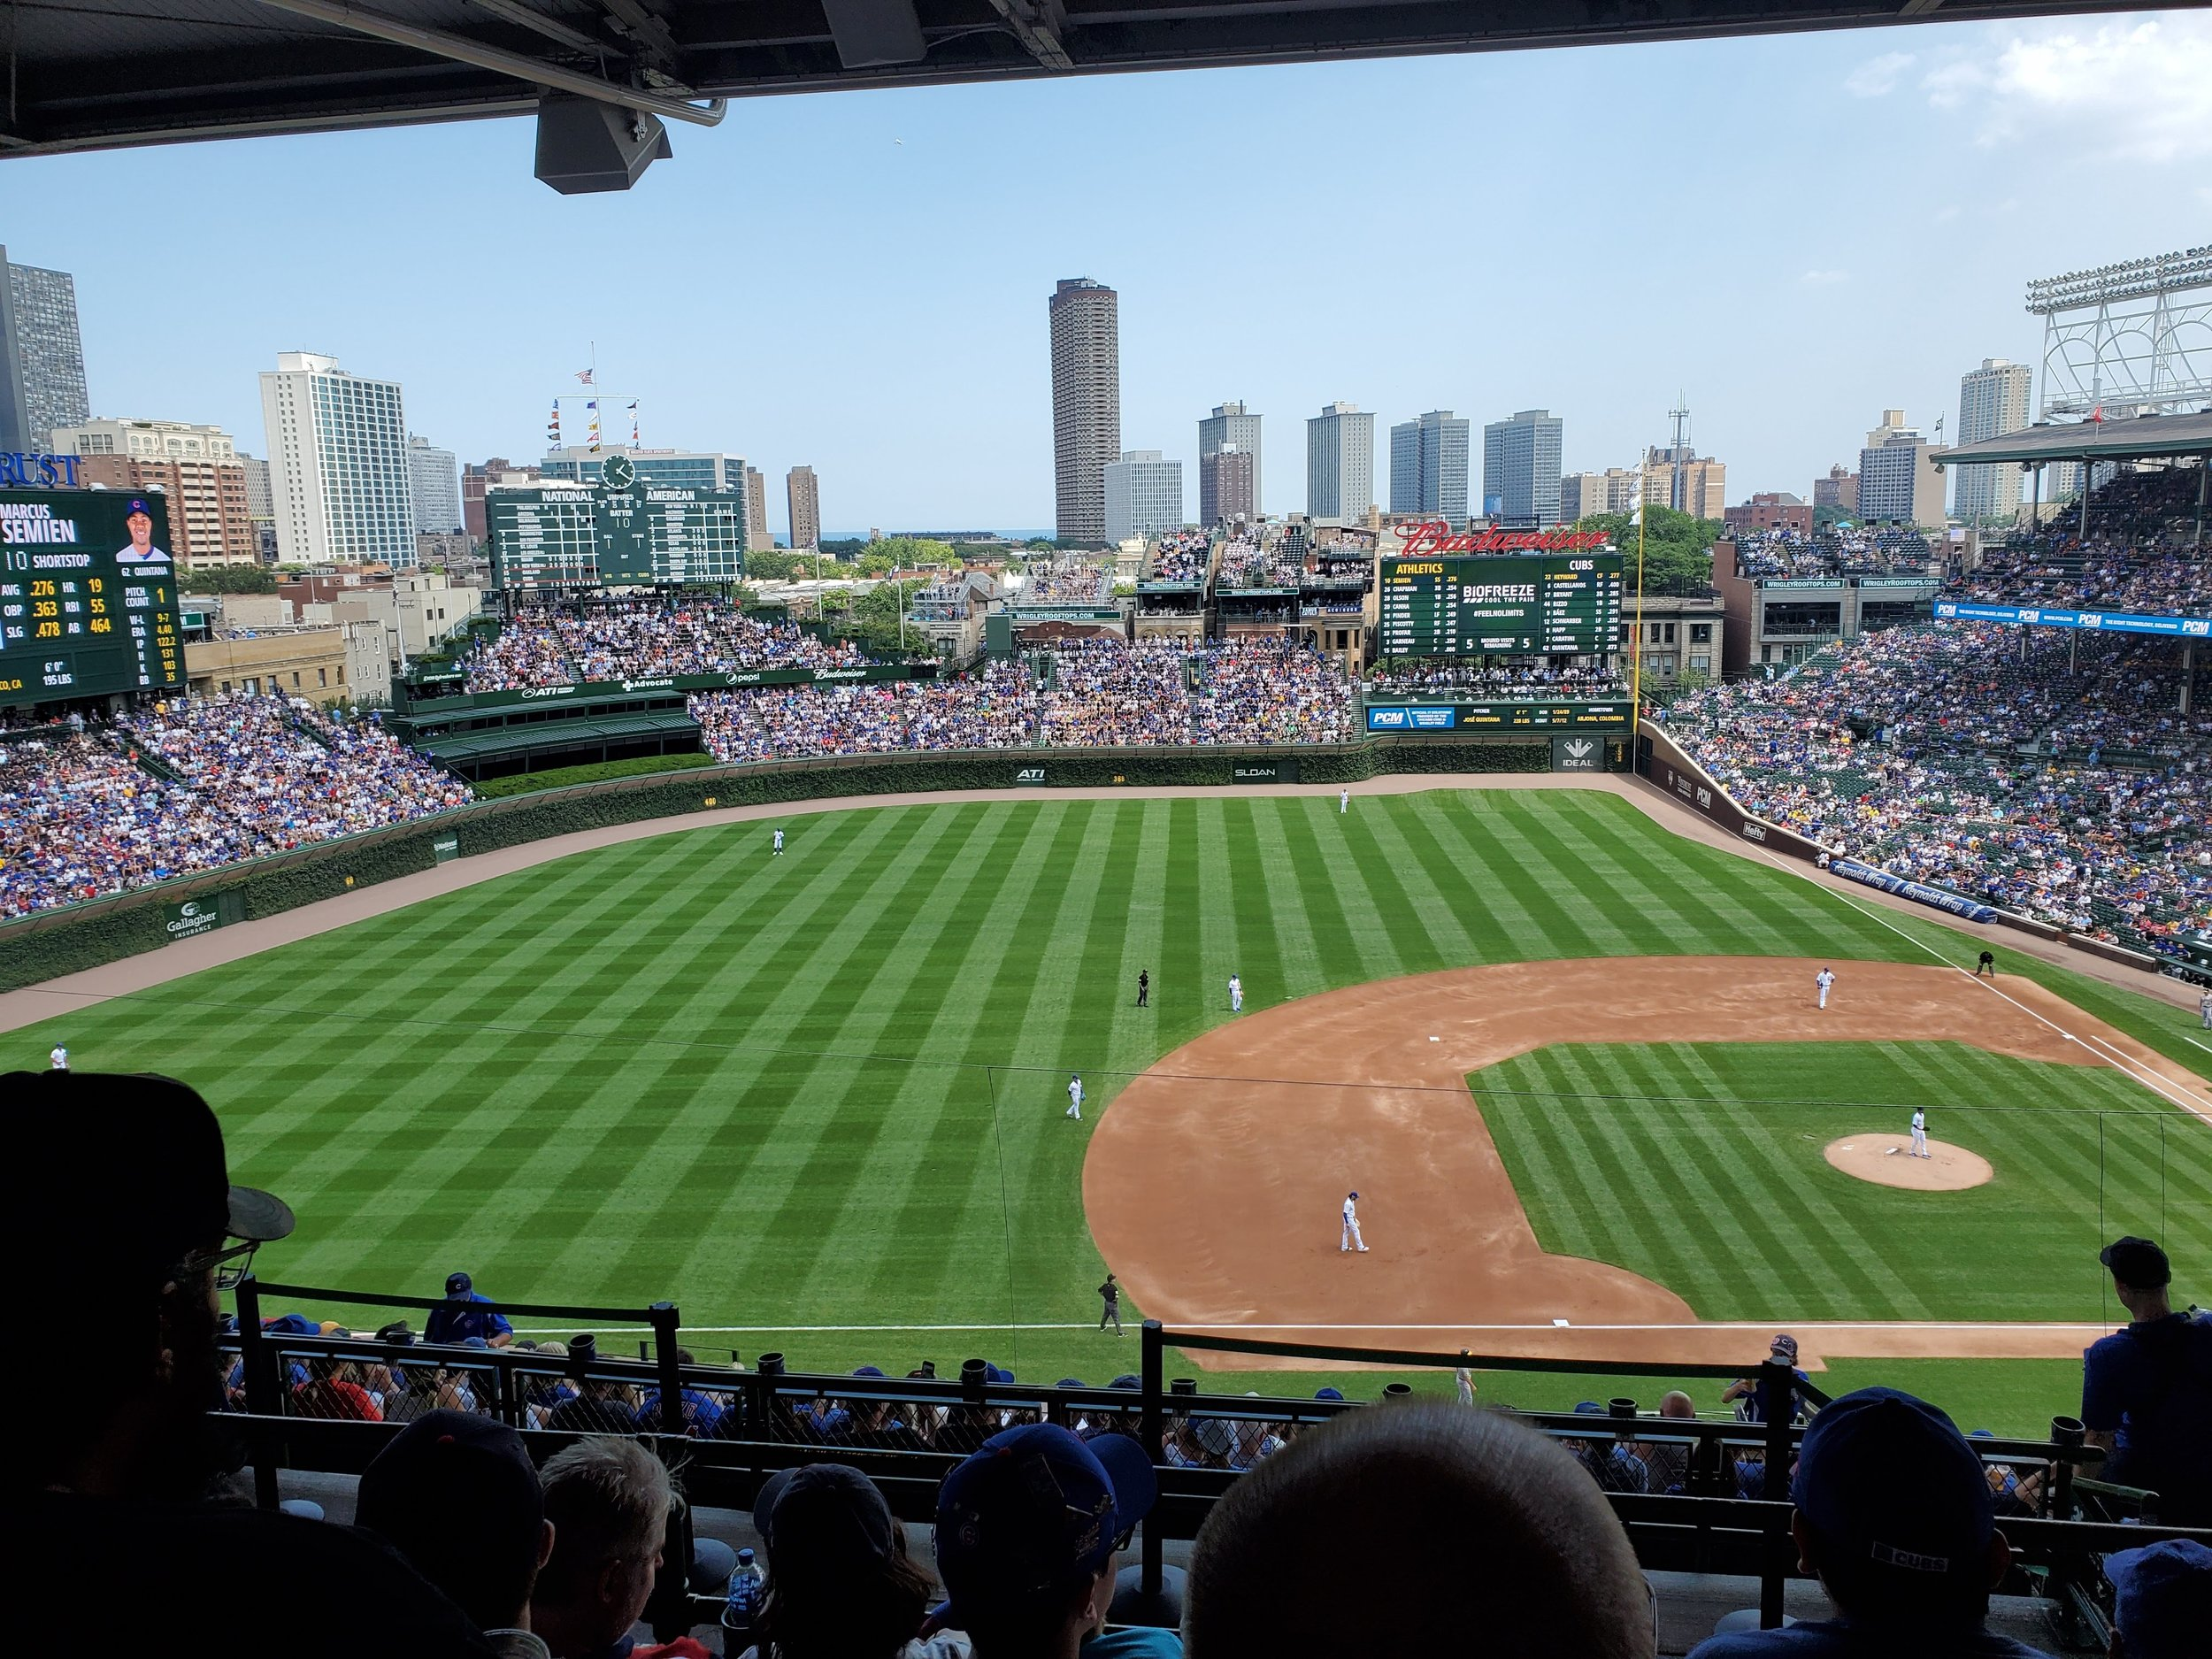 The true Field of Dreams on a perfect day for baseball. But let's not play two